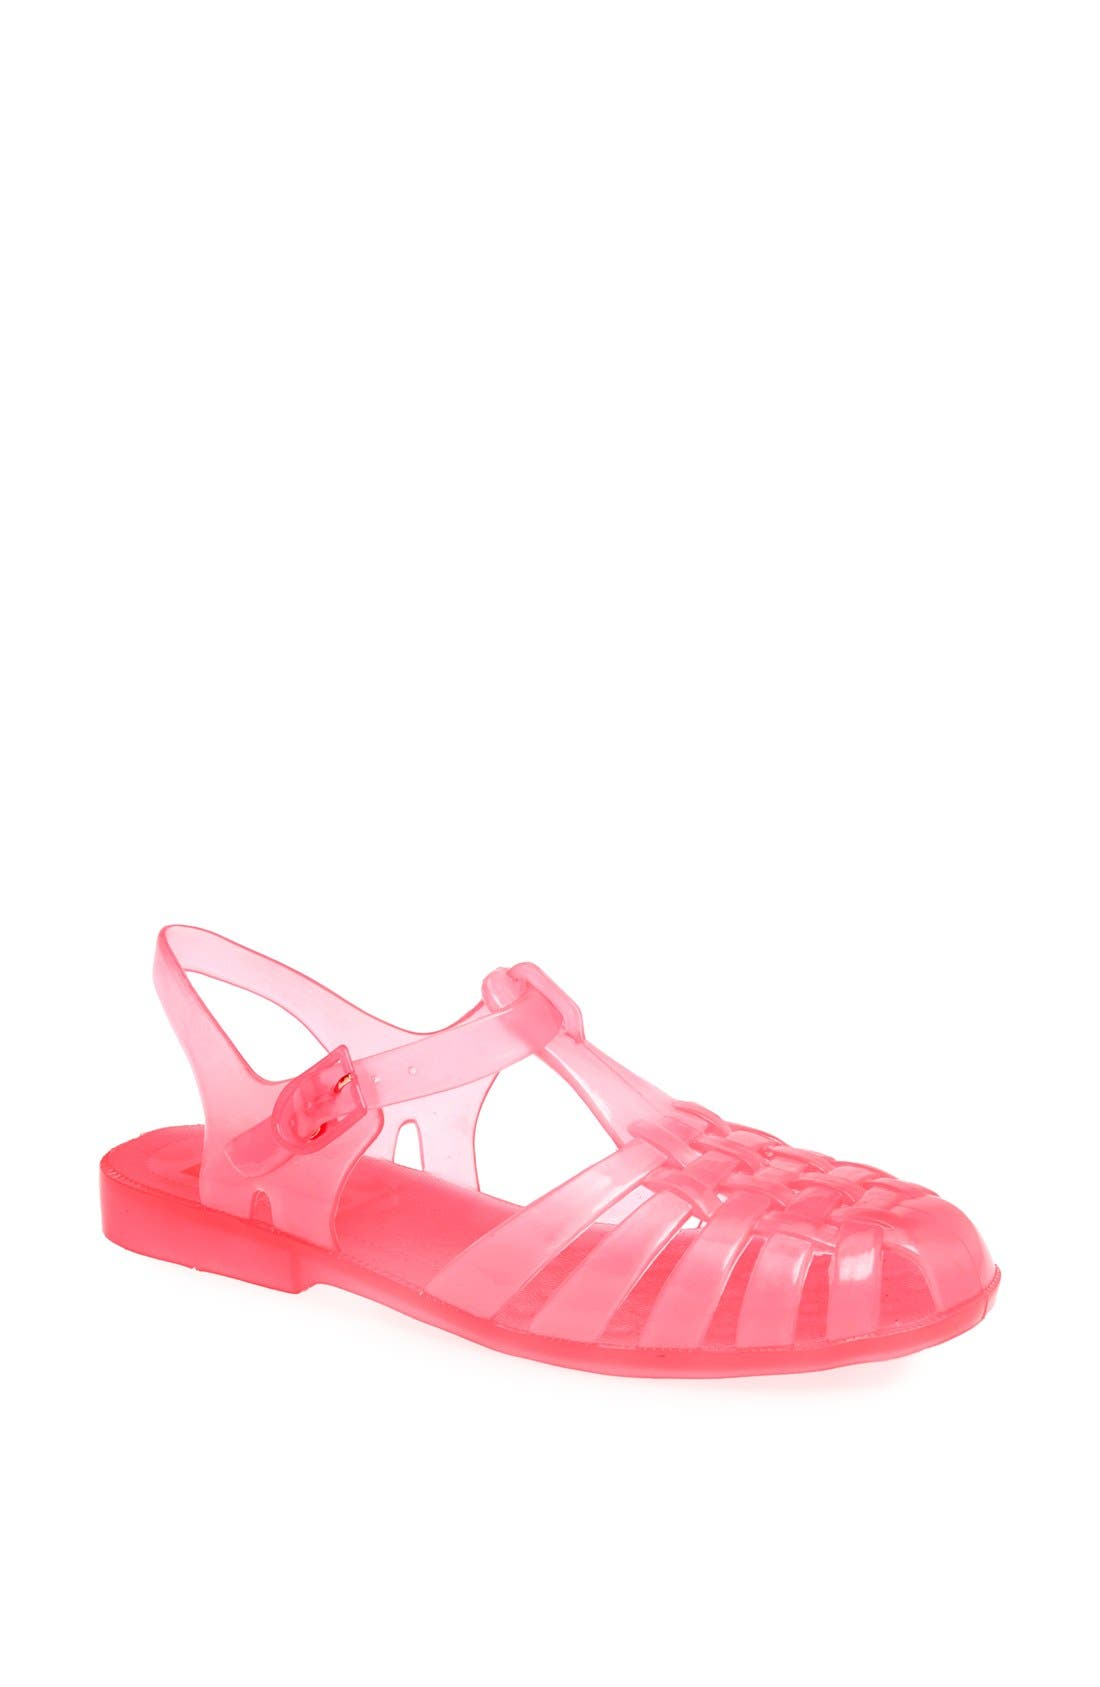 Alternate Image 1 Selected - BC Footwear 'In No Time' Jelly Sandal